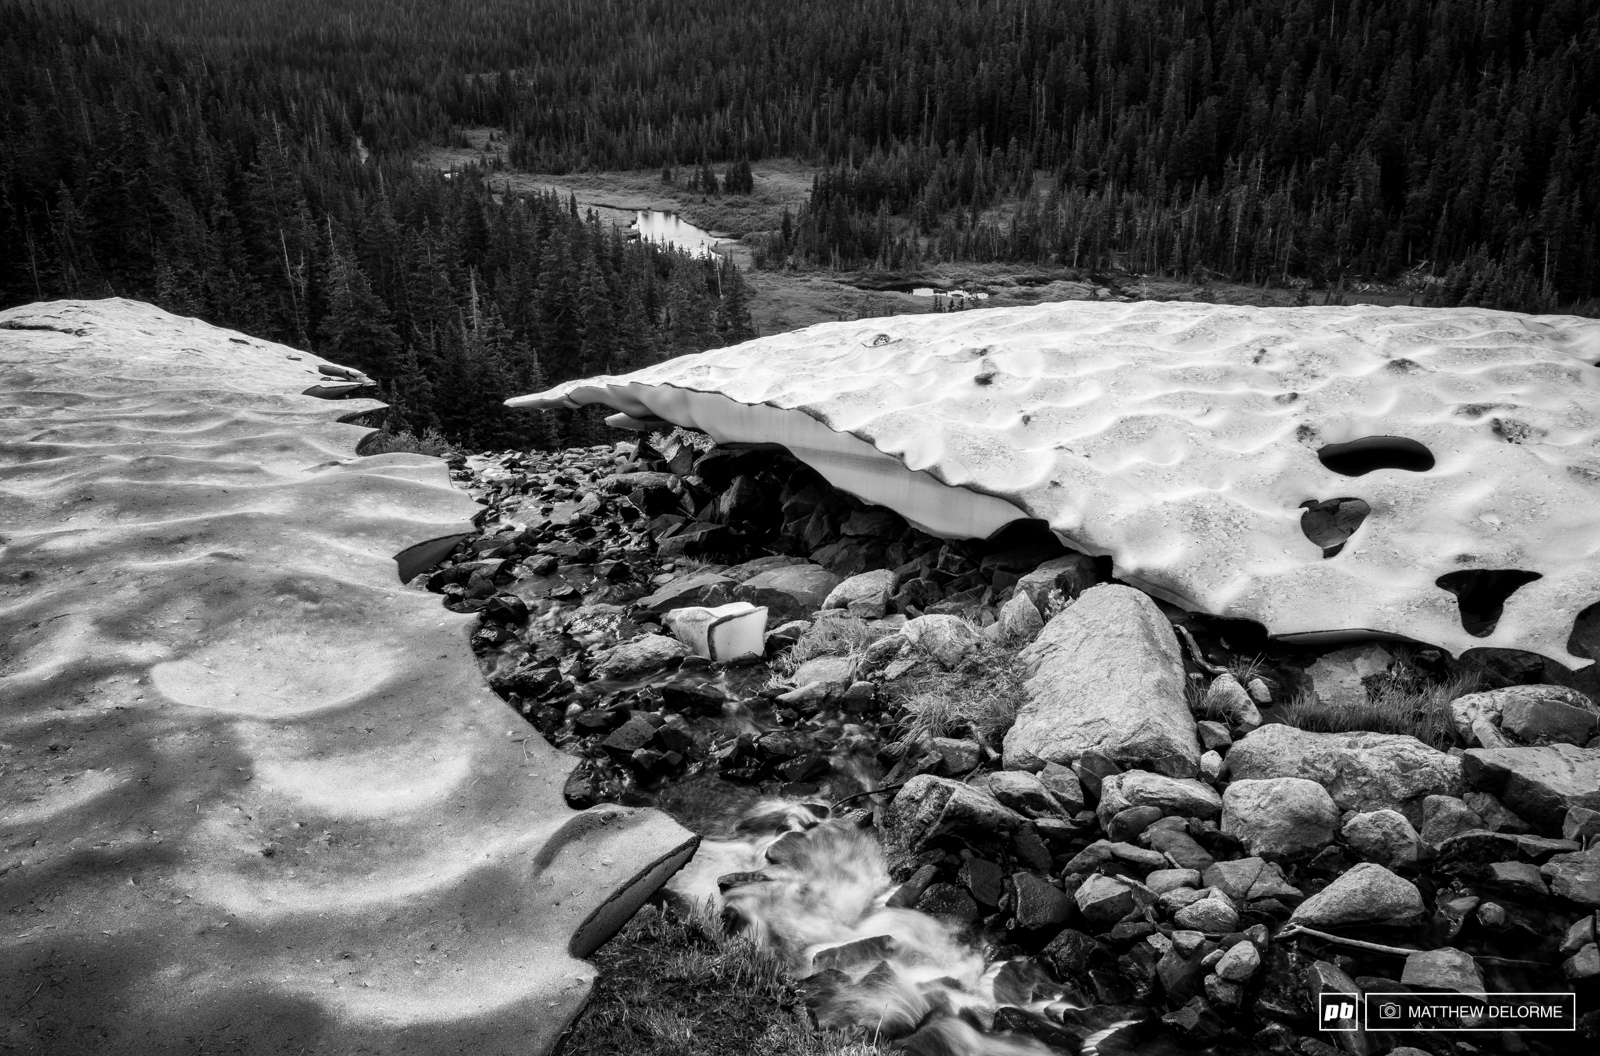 Glacial streams run off the higher summits to feed the alpine lakes below.